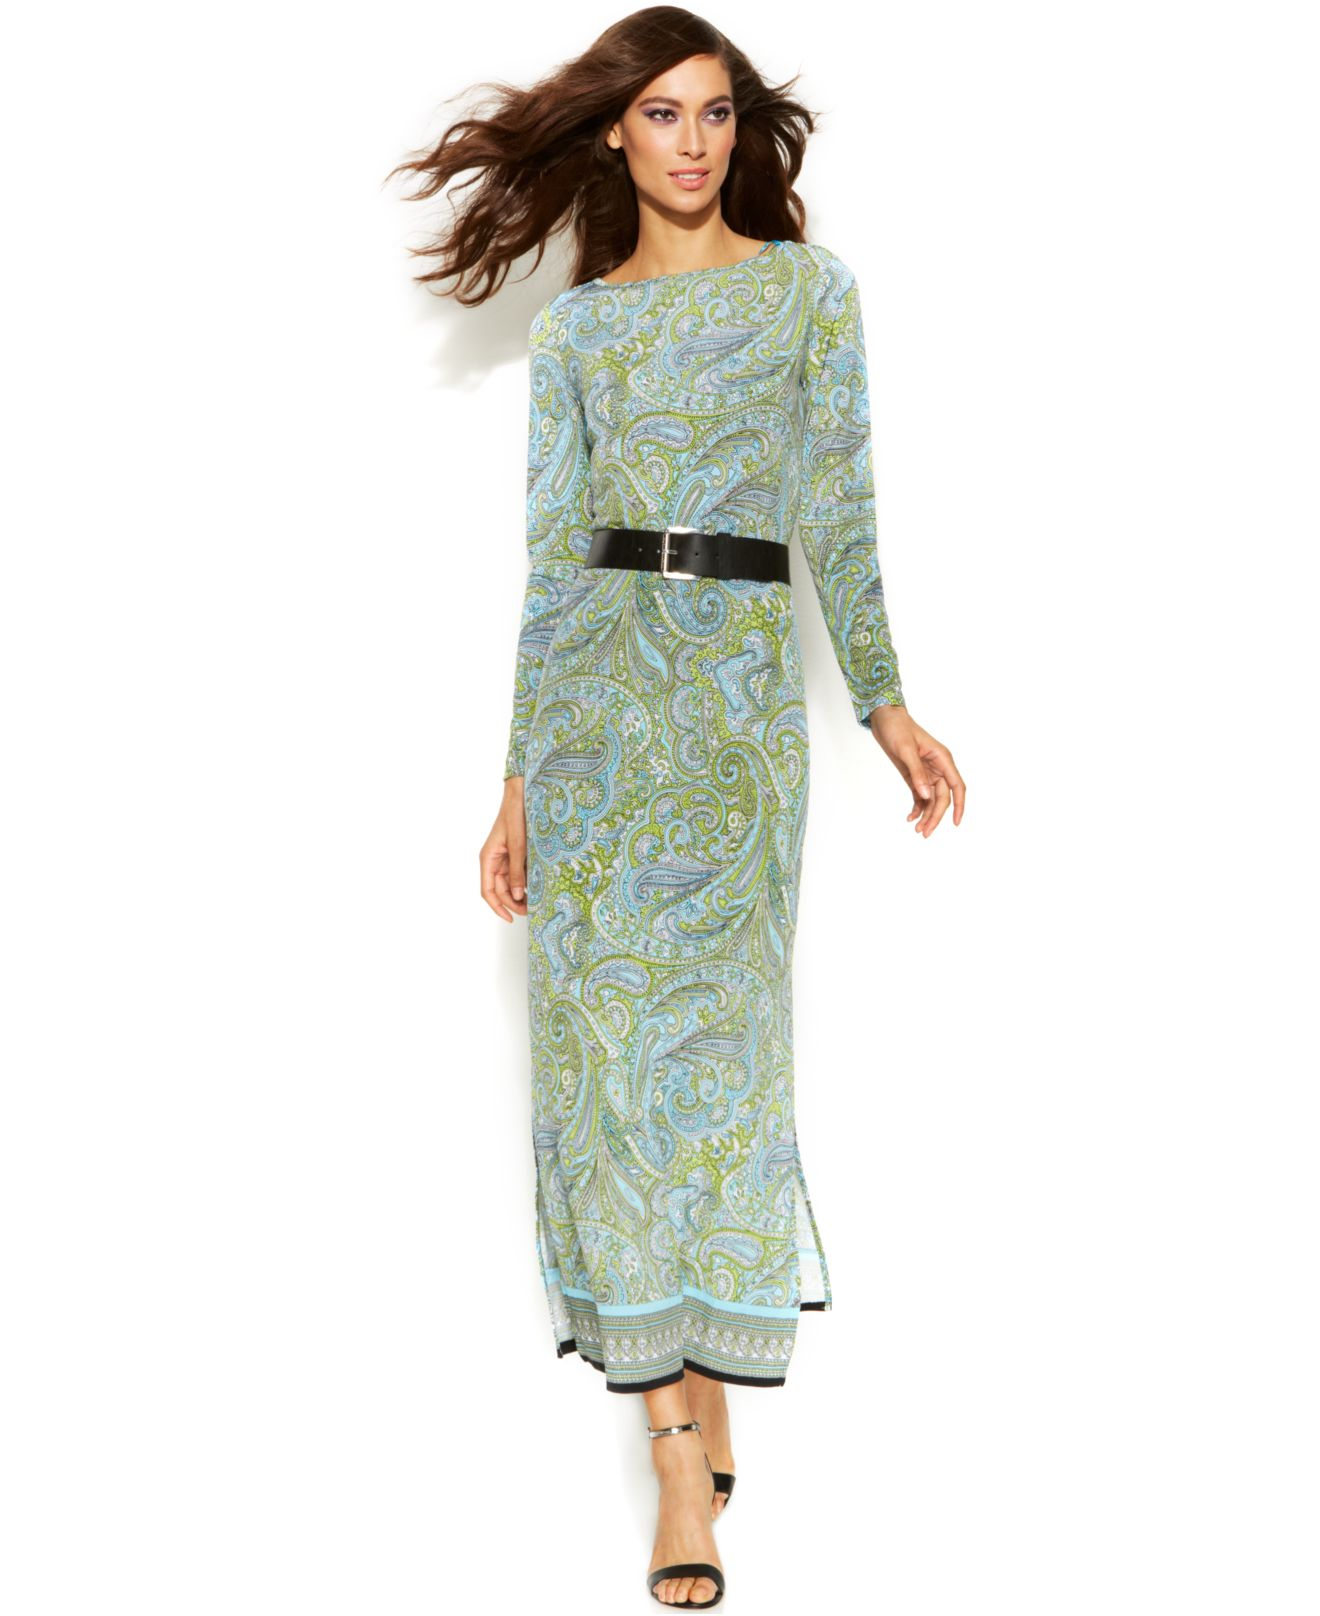 Belted maxi dress long sleeves